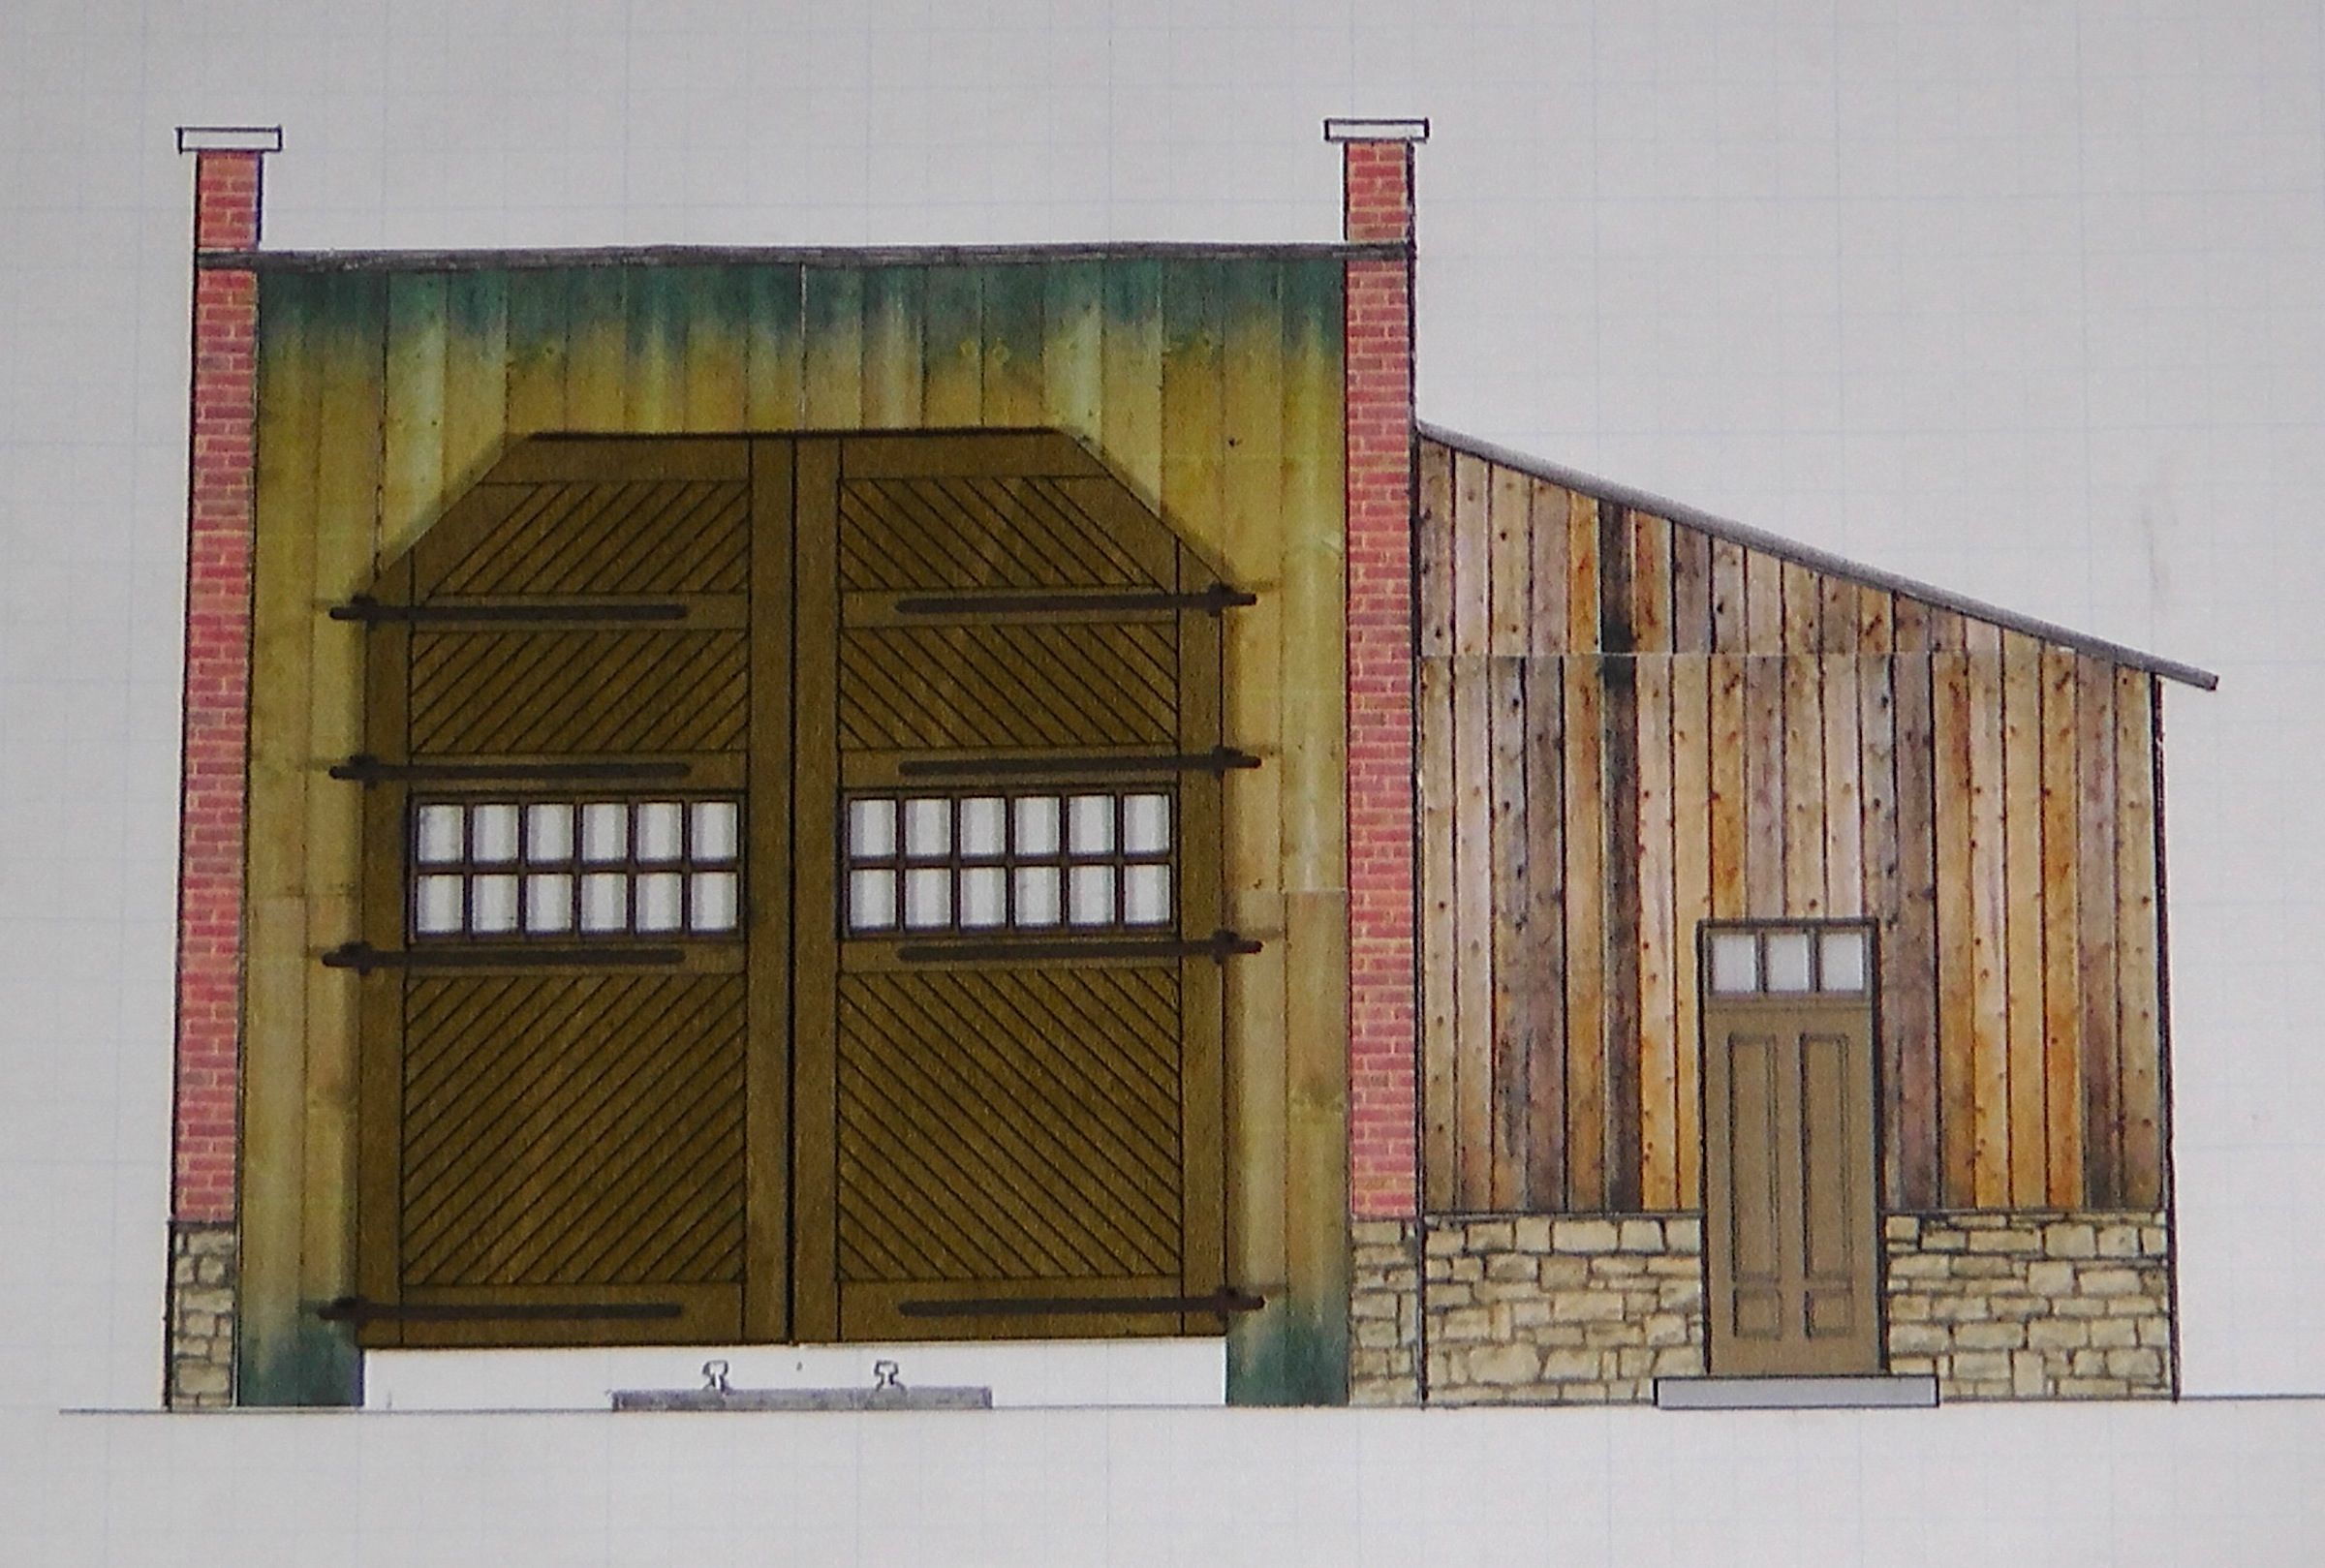 Plans for the Durango Engine House | The Denver, Durango ... on railroad depot house plans, draw my own house plans, railroad section house plans, railroad car house plans, railroad steam engine side rods,